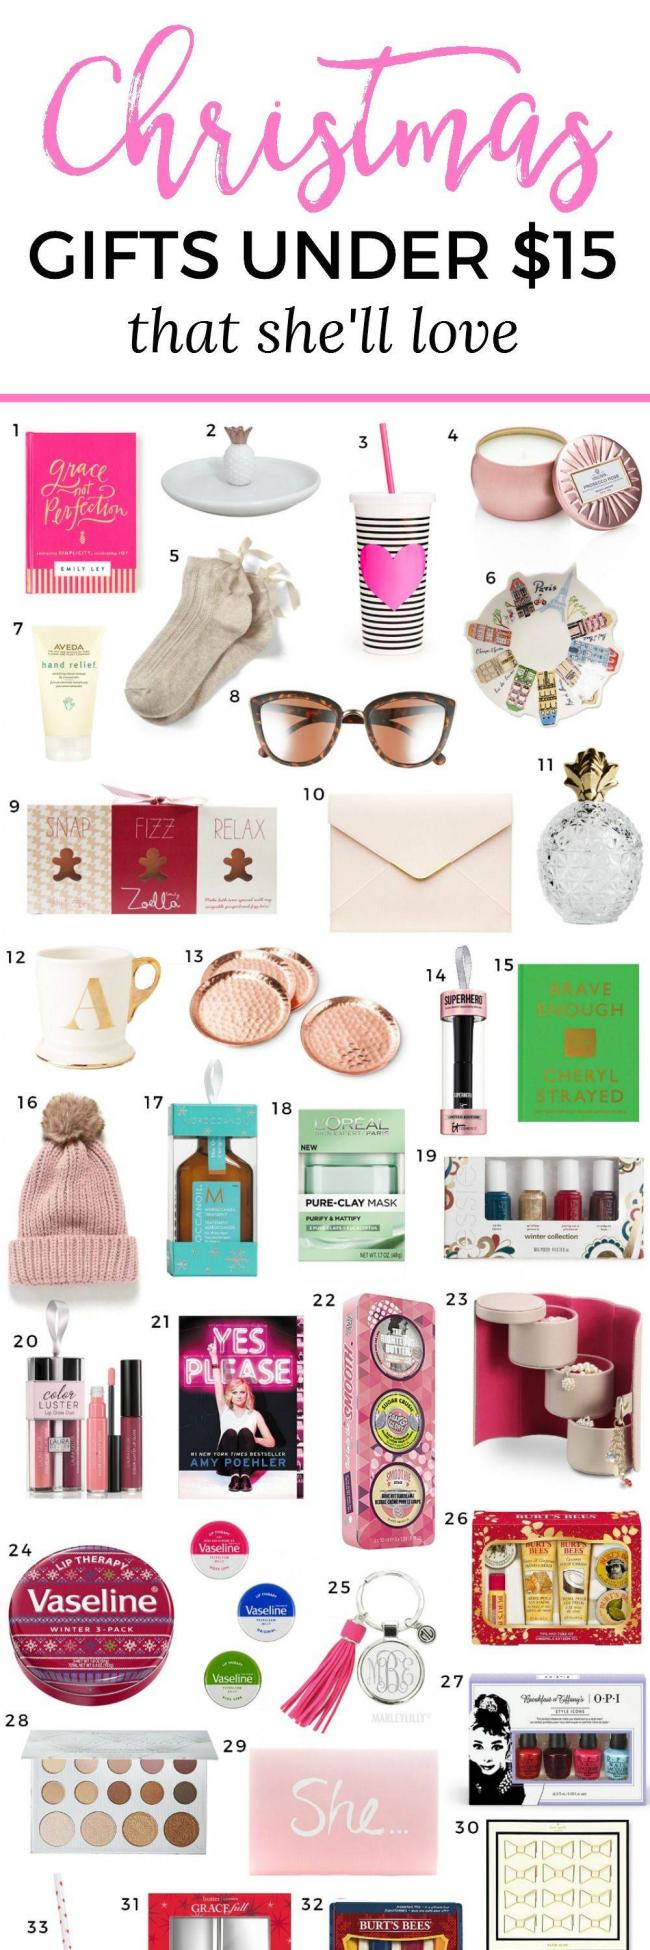 10 Beautiful Christmas Gift Ideas For 13 Year Girl best gifts for 13 year old boys great christmas gift ideas for tween 2020